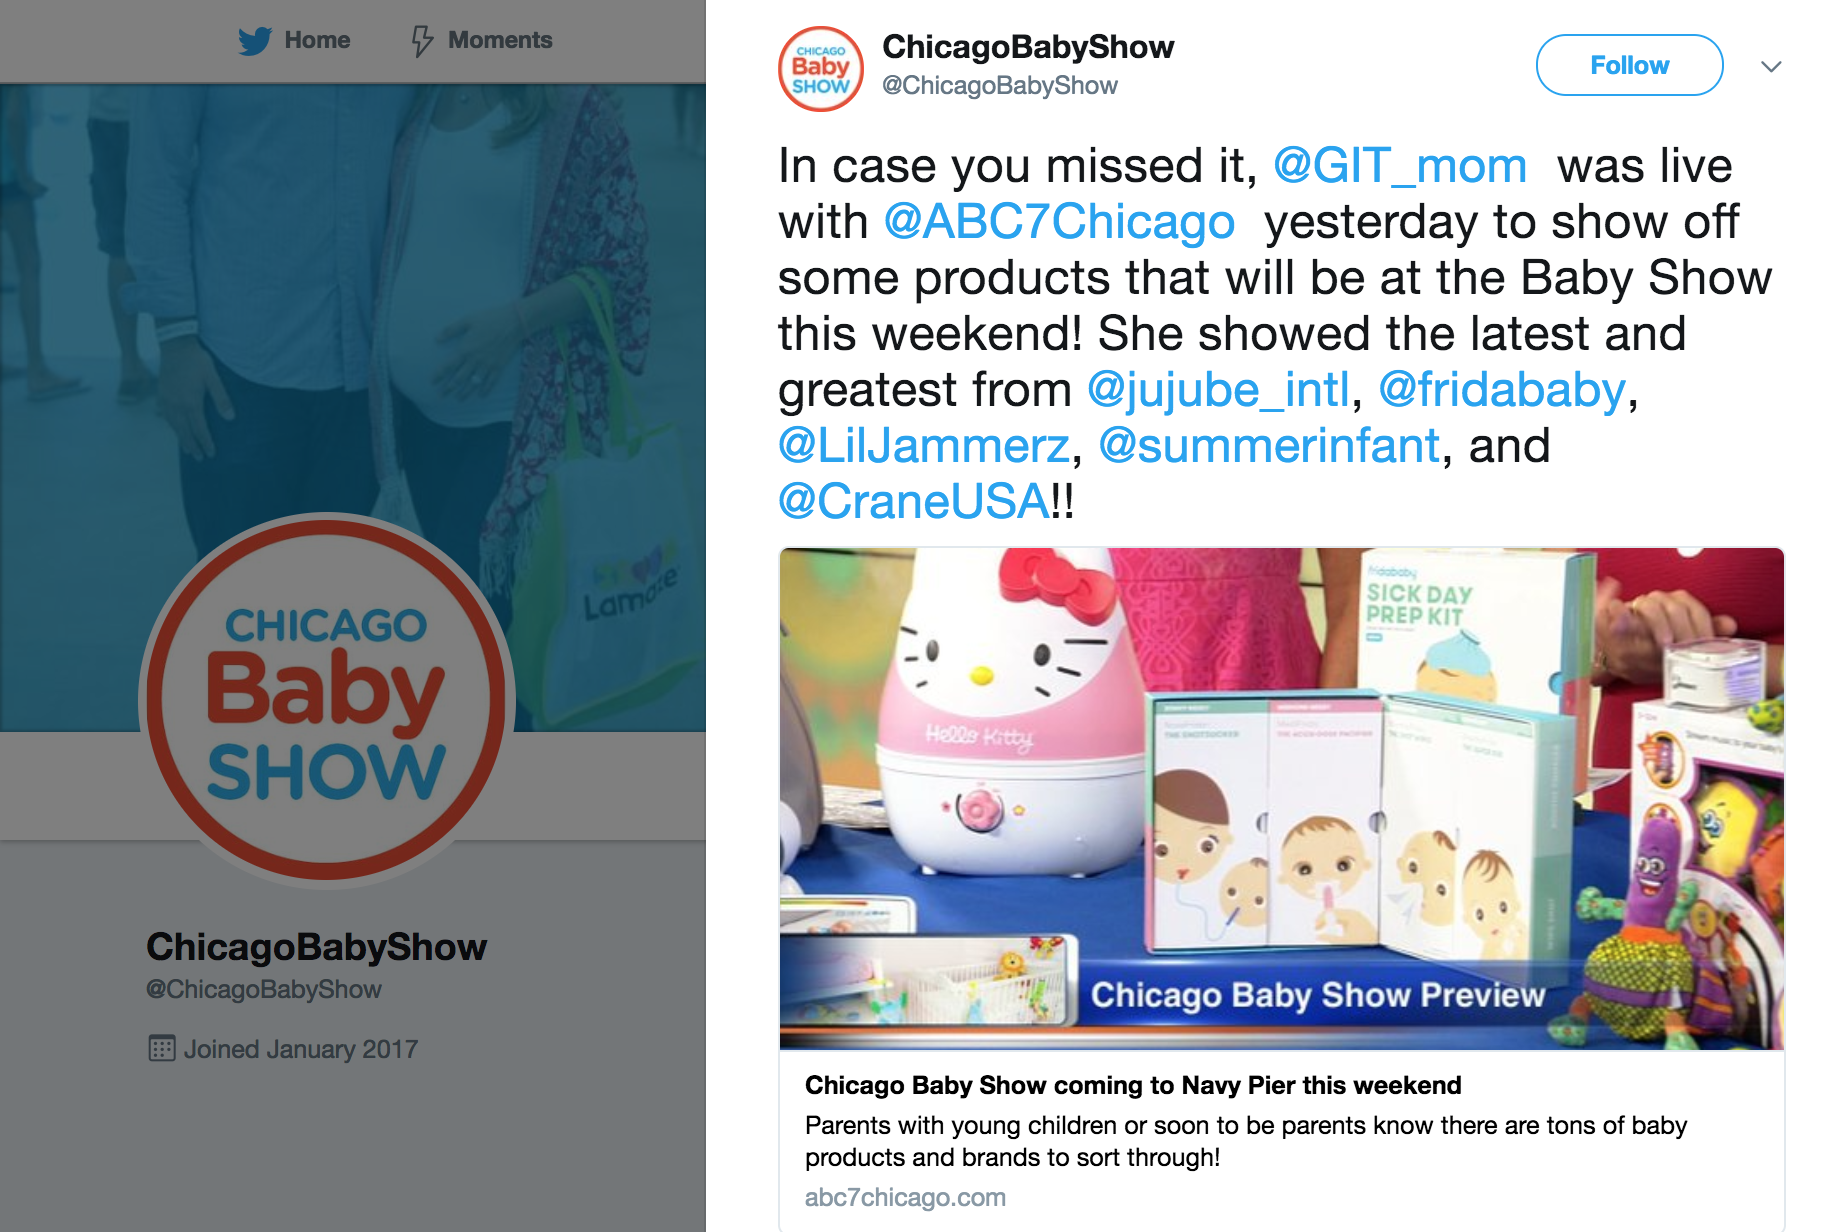 2018.08.24_Chicago Baby Show, Twitter_Summer Infant Baby Pixel01_cropped 3x2.png